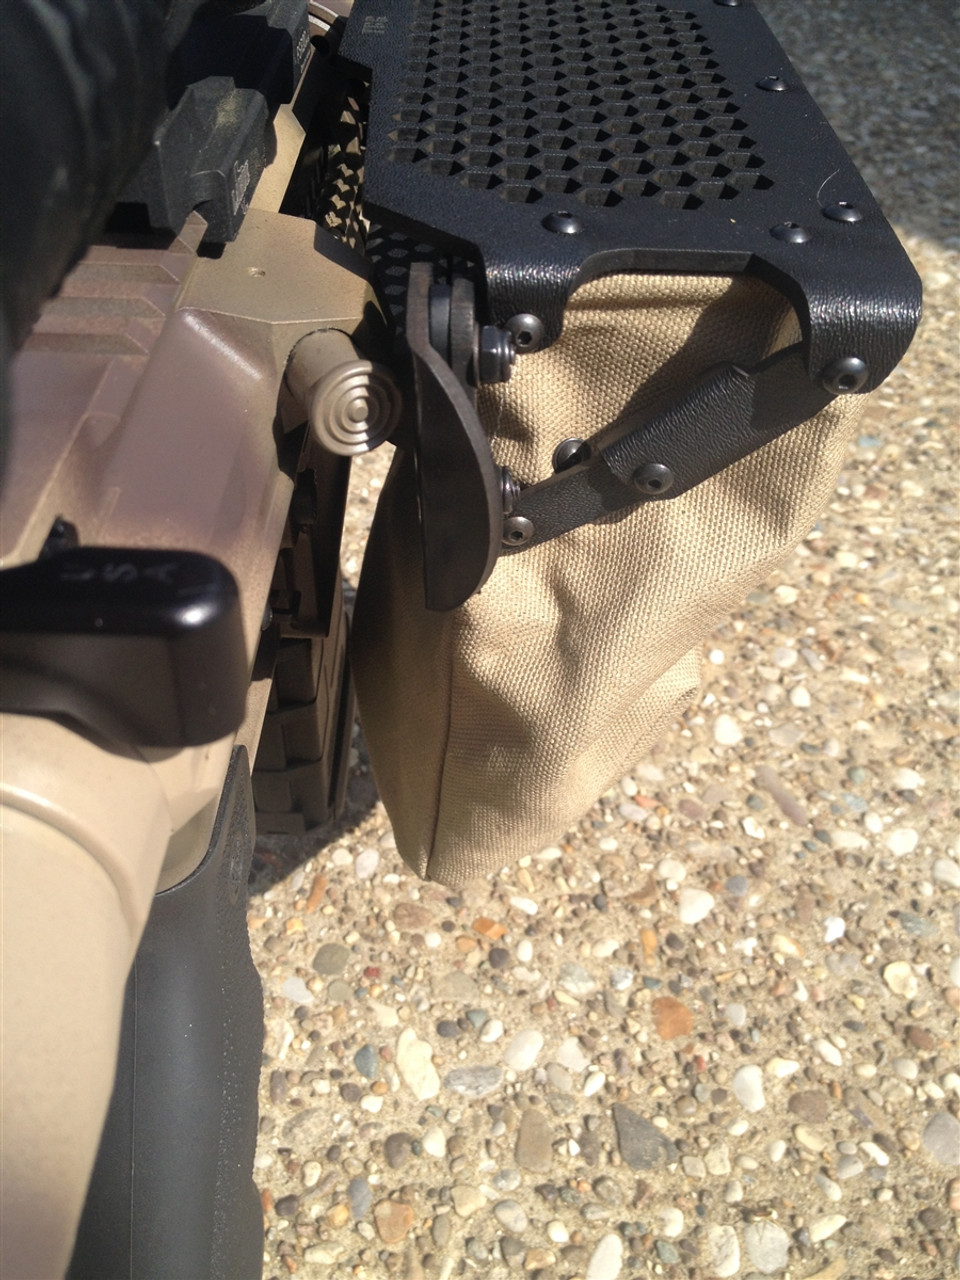 shown on DPMS LR308 in Khaki color.